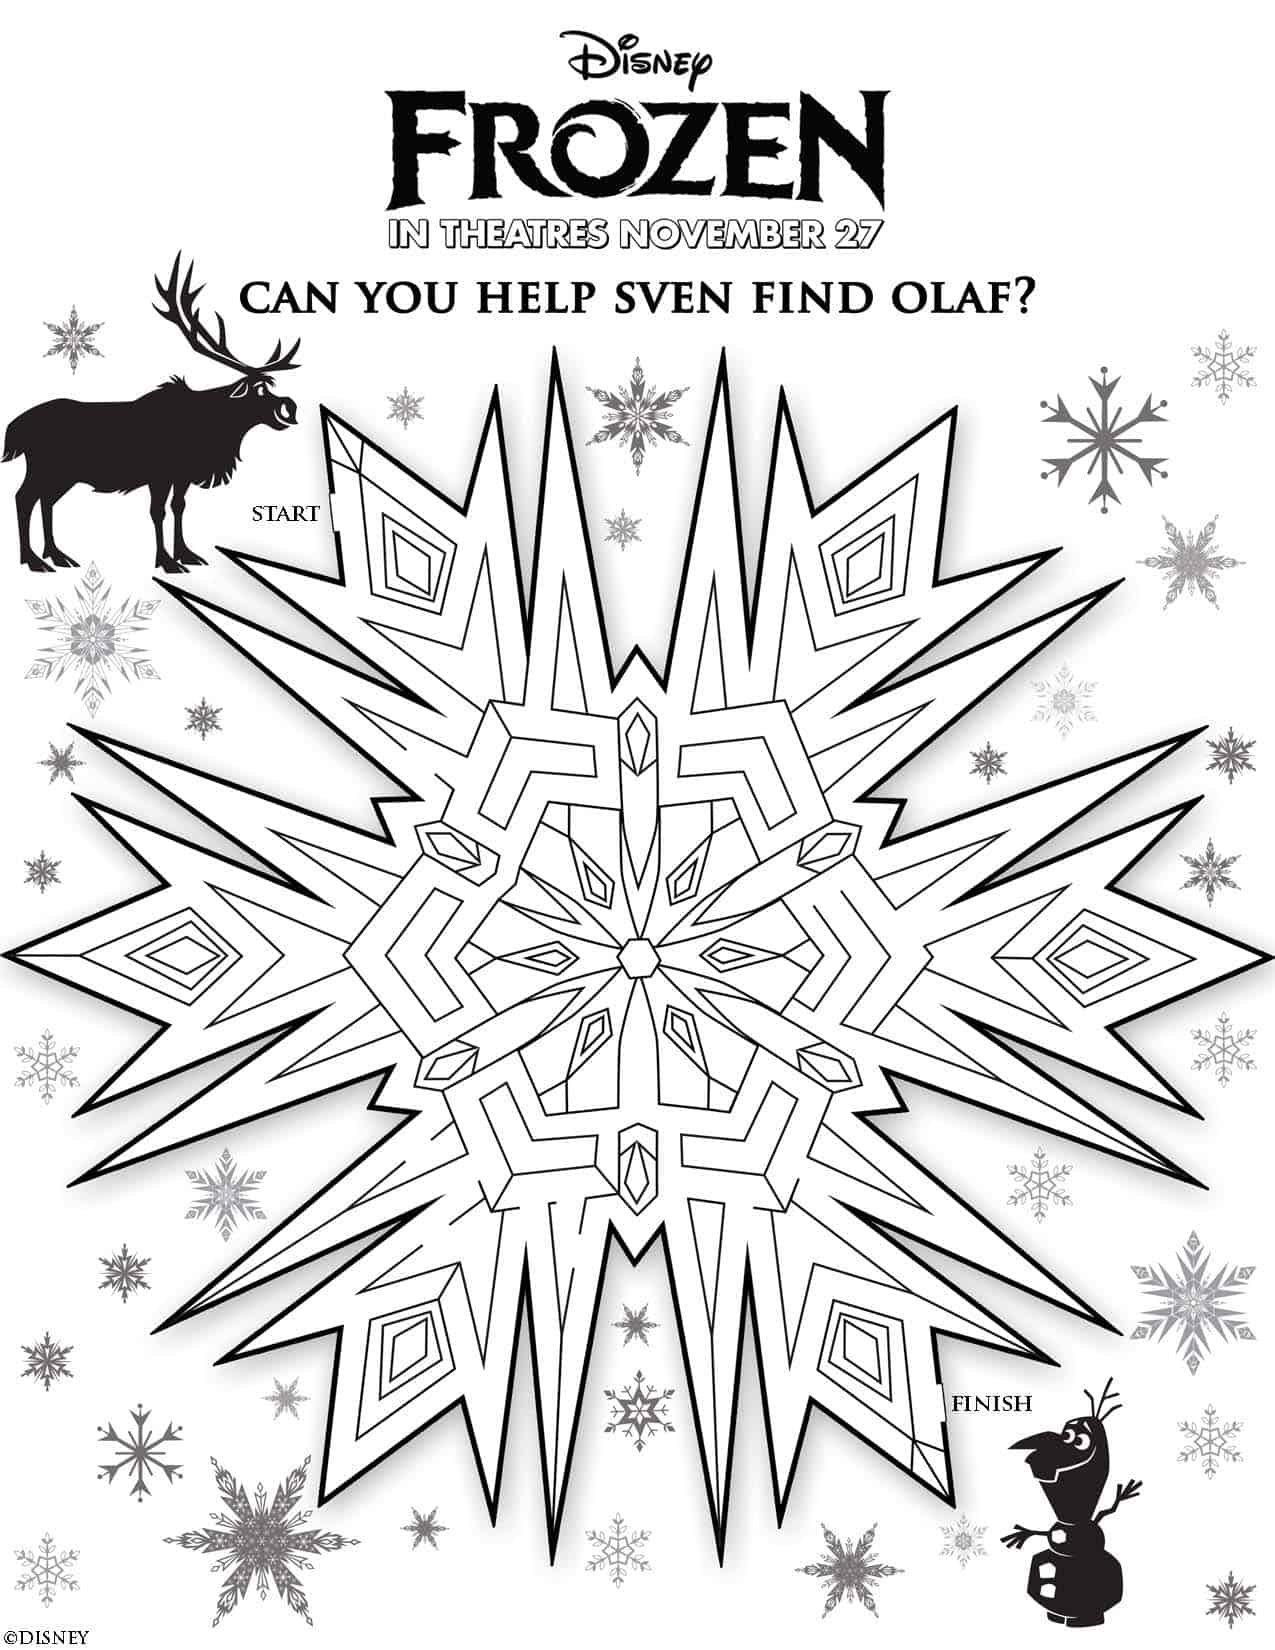 Disney 39 s frozen free printables disneyfrozen for Frozen coloring pages free